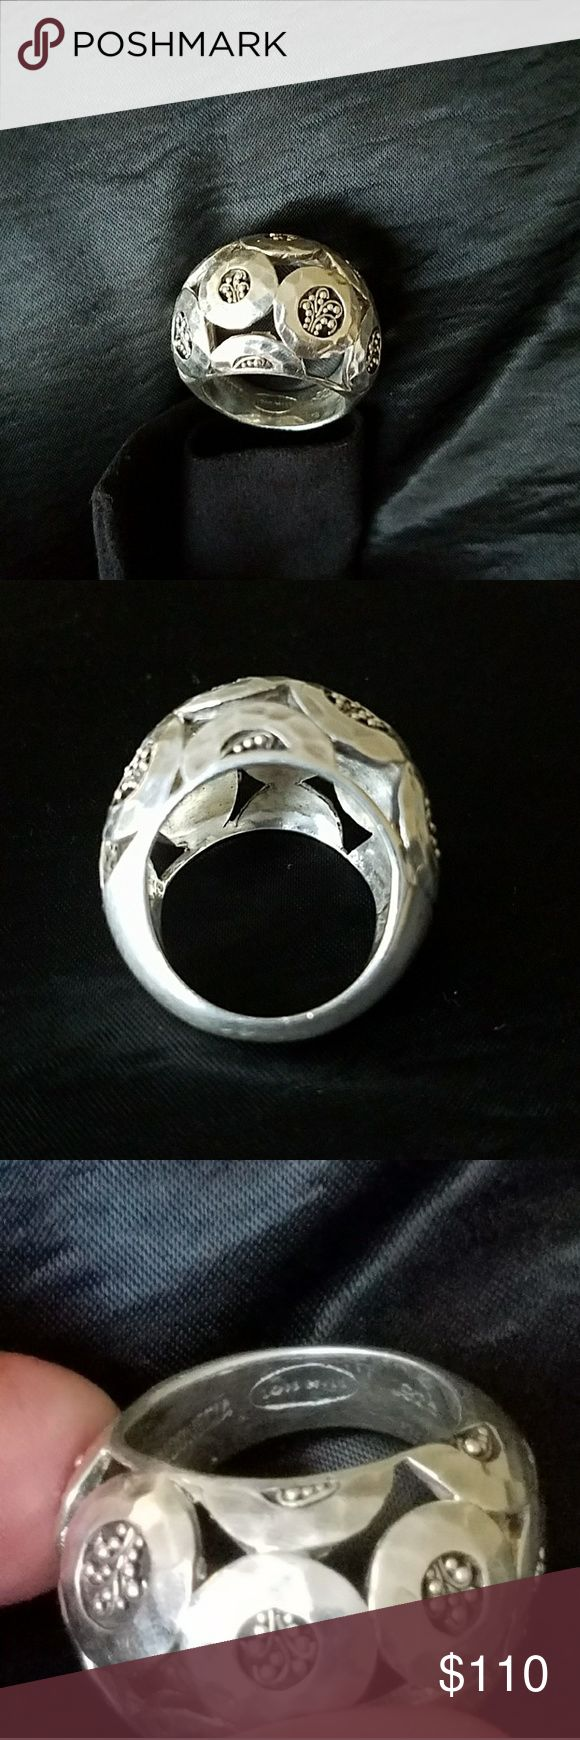 Lois Hill Ring Lois Hill 925 Silver Ring. This big ring has beautiful designs. Regular signs of wear. LOIS HILL Jewelry Rings